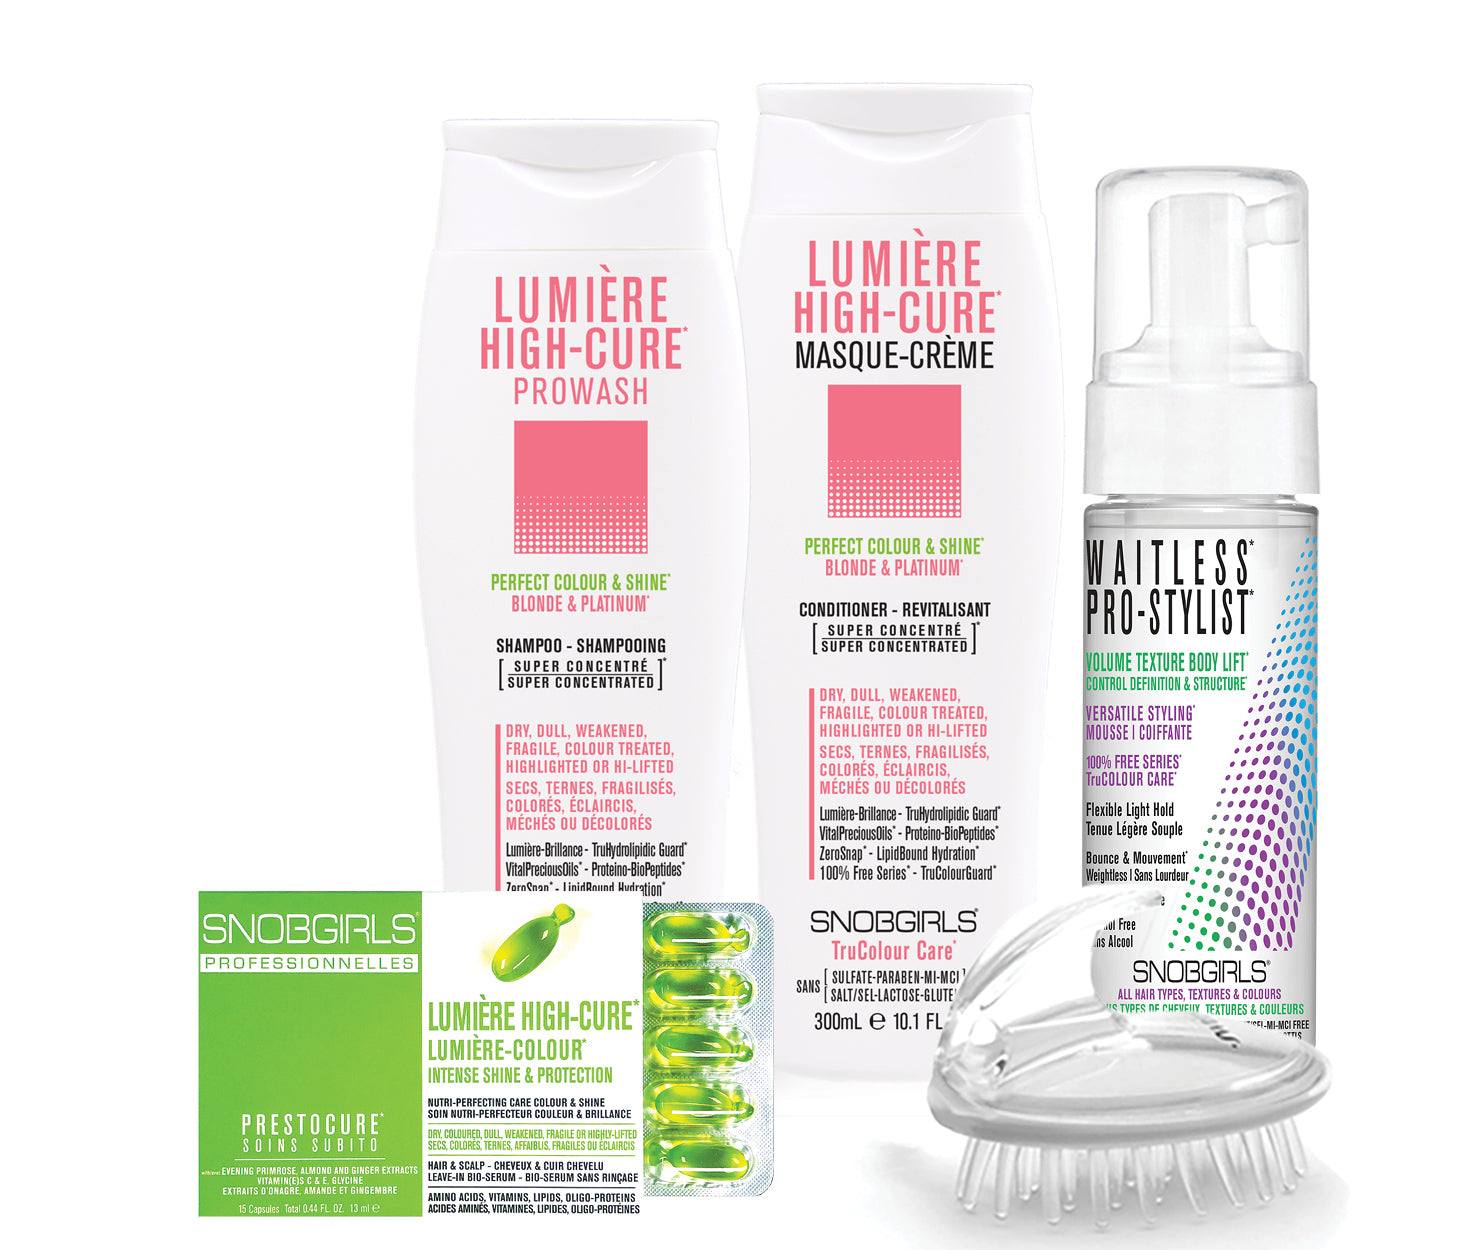 LUMIERE HIGH-CURE BOX PERFECT COLOUR & SHINE Bundle